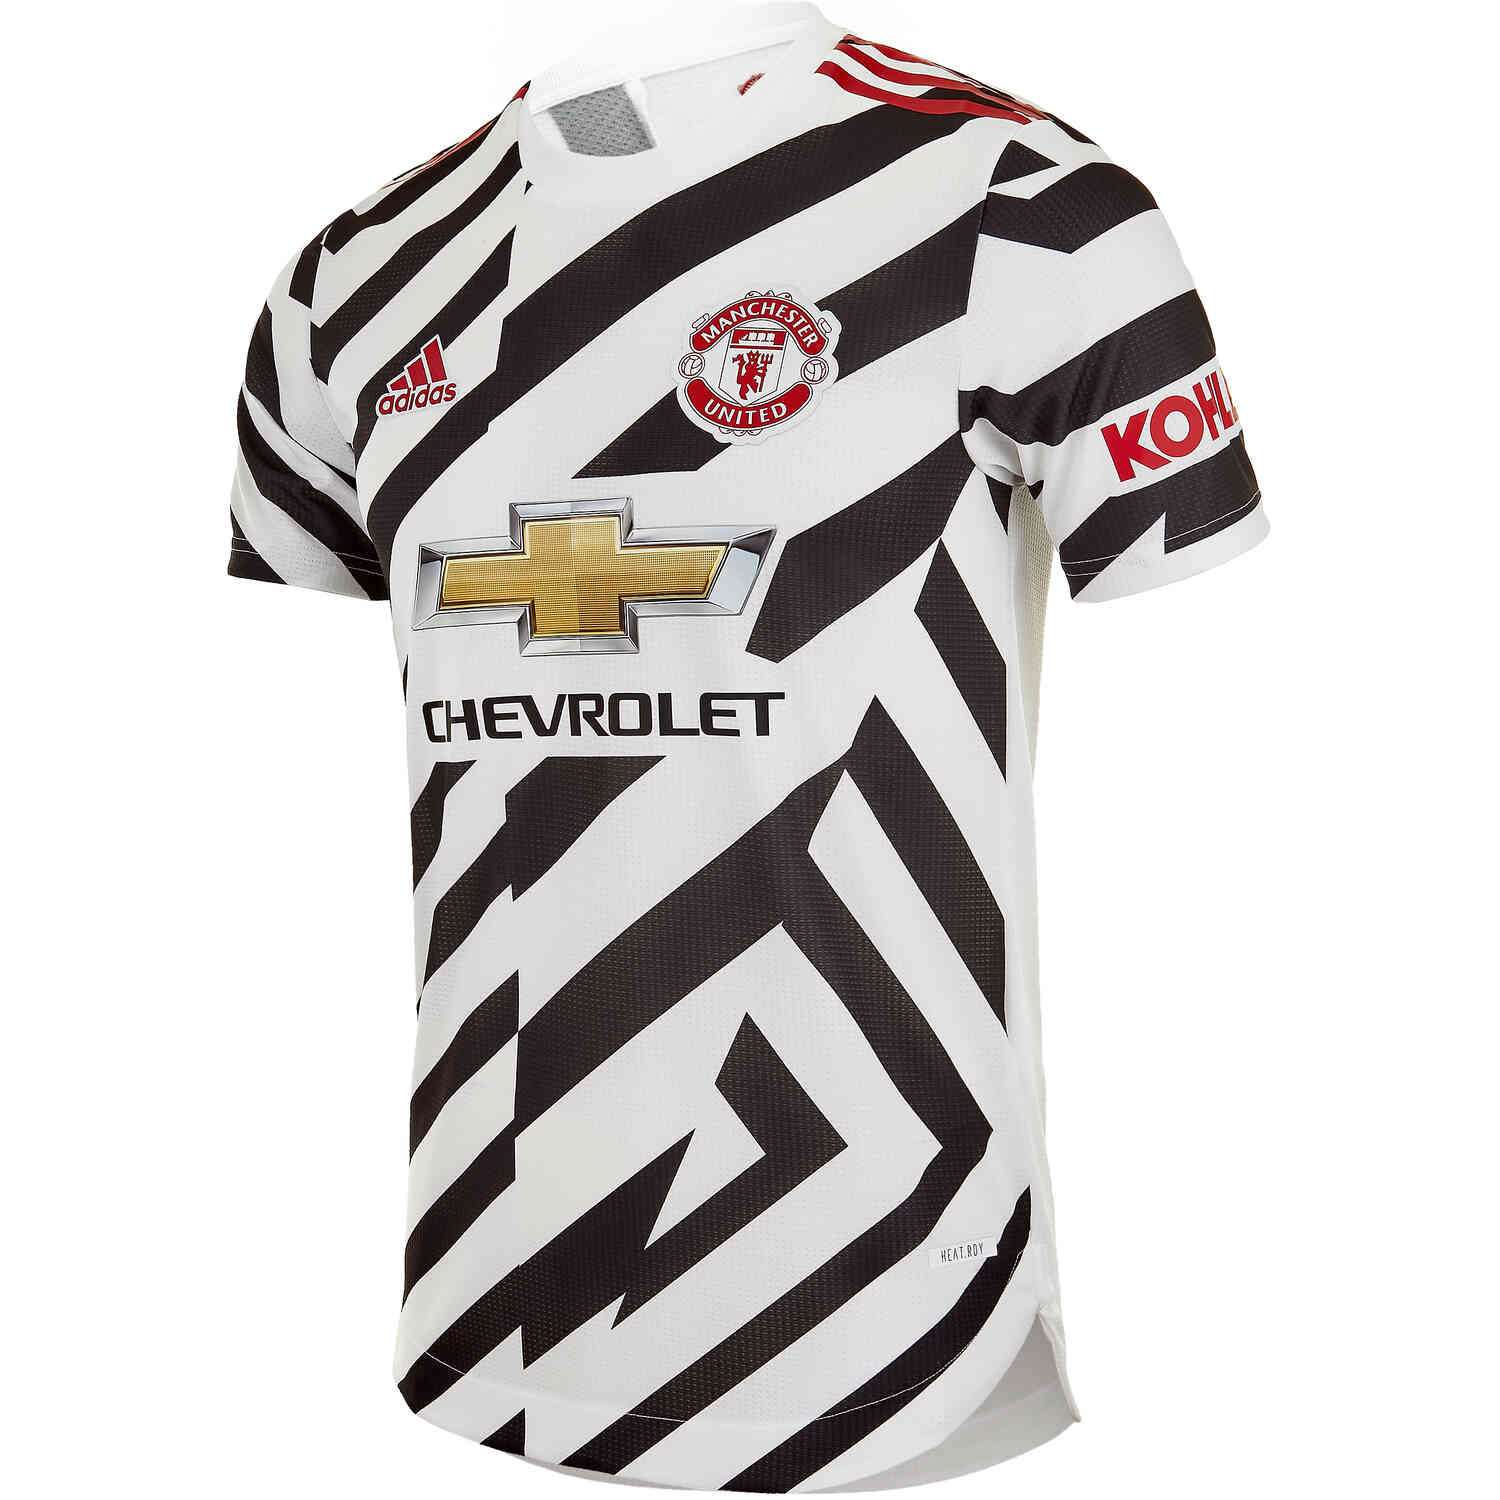 2020/21 adidas Manchester United 3rd Authentic Jersey - Soccer Master